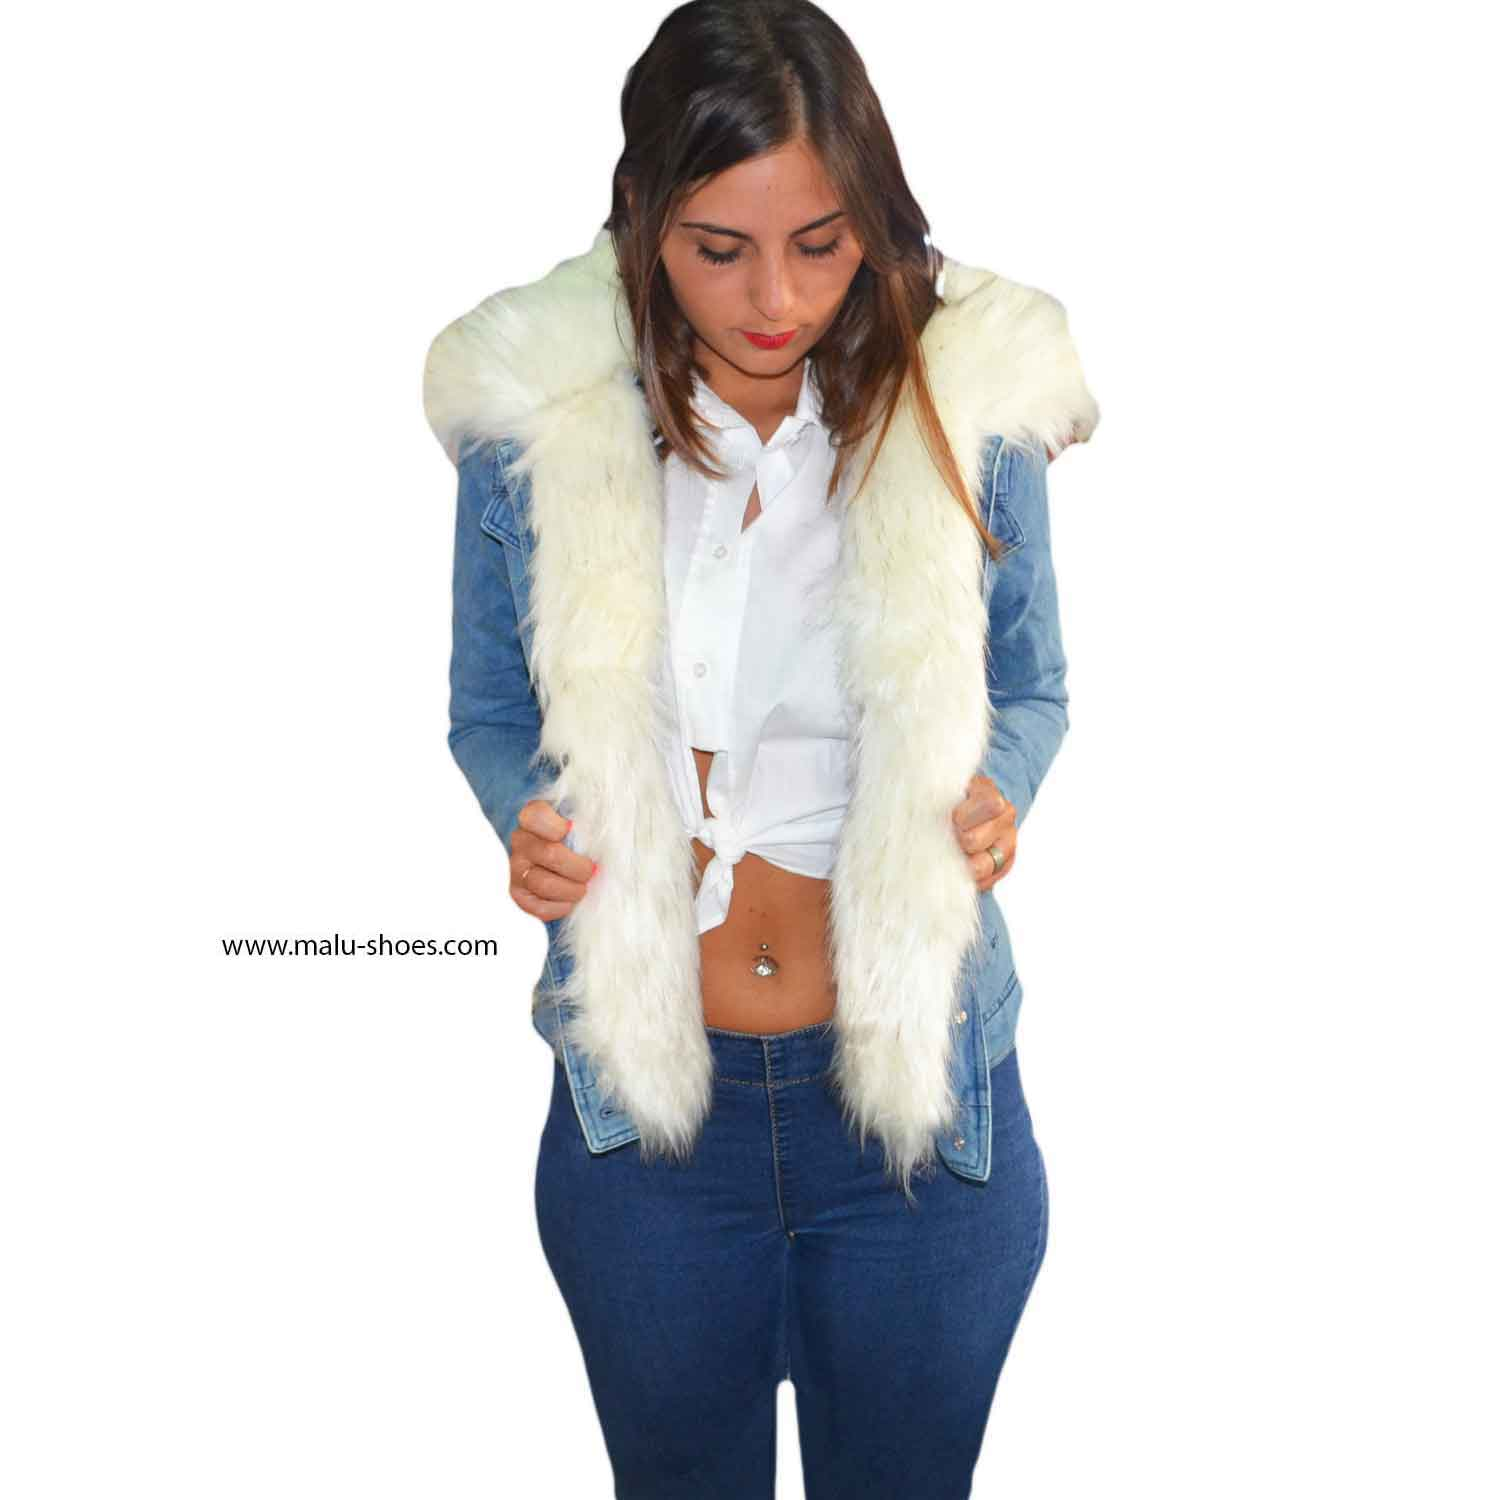 finest selection 0534d 804a4 New Parka Jeans con pelliccia colorata Bianco voluminosa glamour donna  parka k-zell | MaluShoes